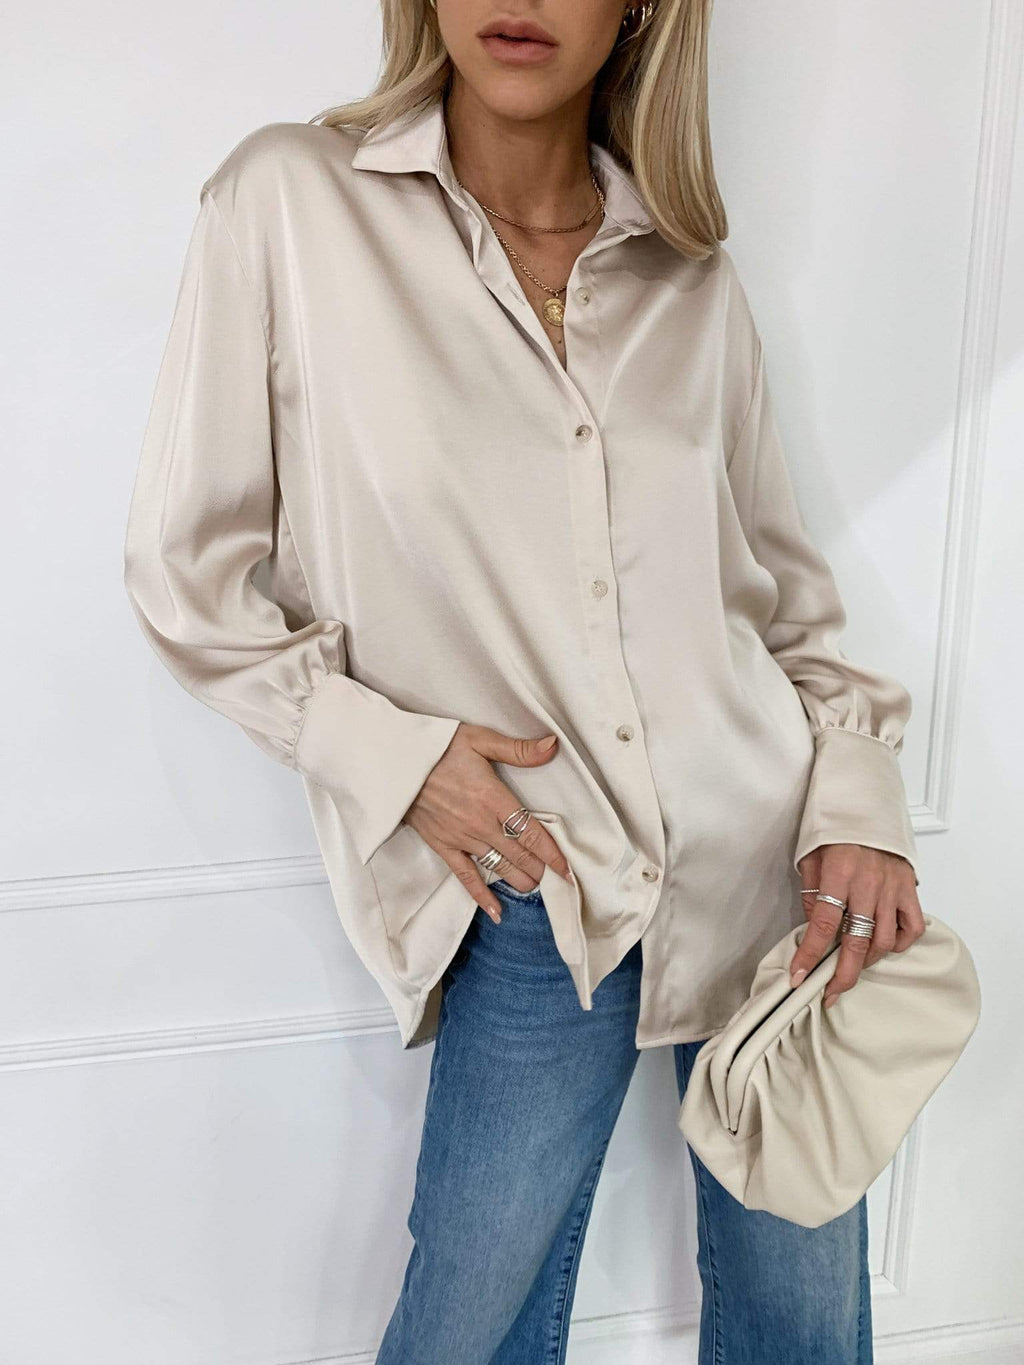 Pretty Lavish shirt cut from a soft satin material. Designed with fluted sleeves and finished with tortoise shell buttons for those extra loved details. The relaxed silhouette makes this style endlessly versatile. Style yours with jeans or leather trousers.